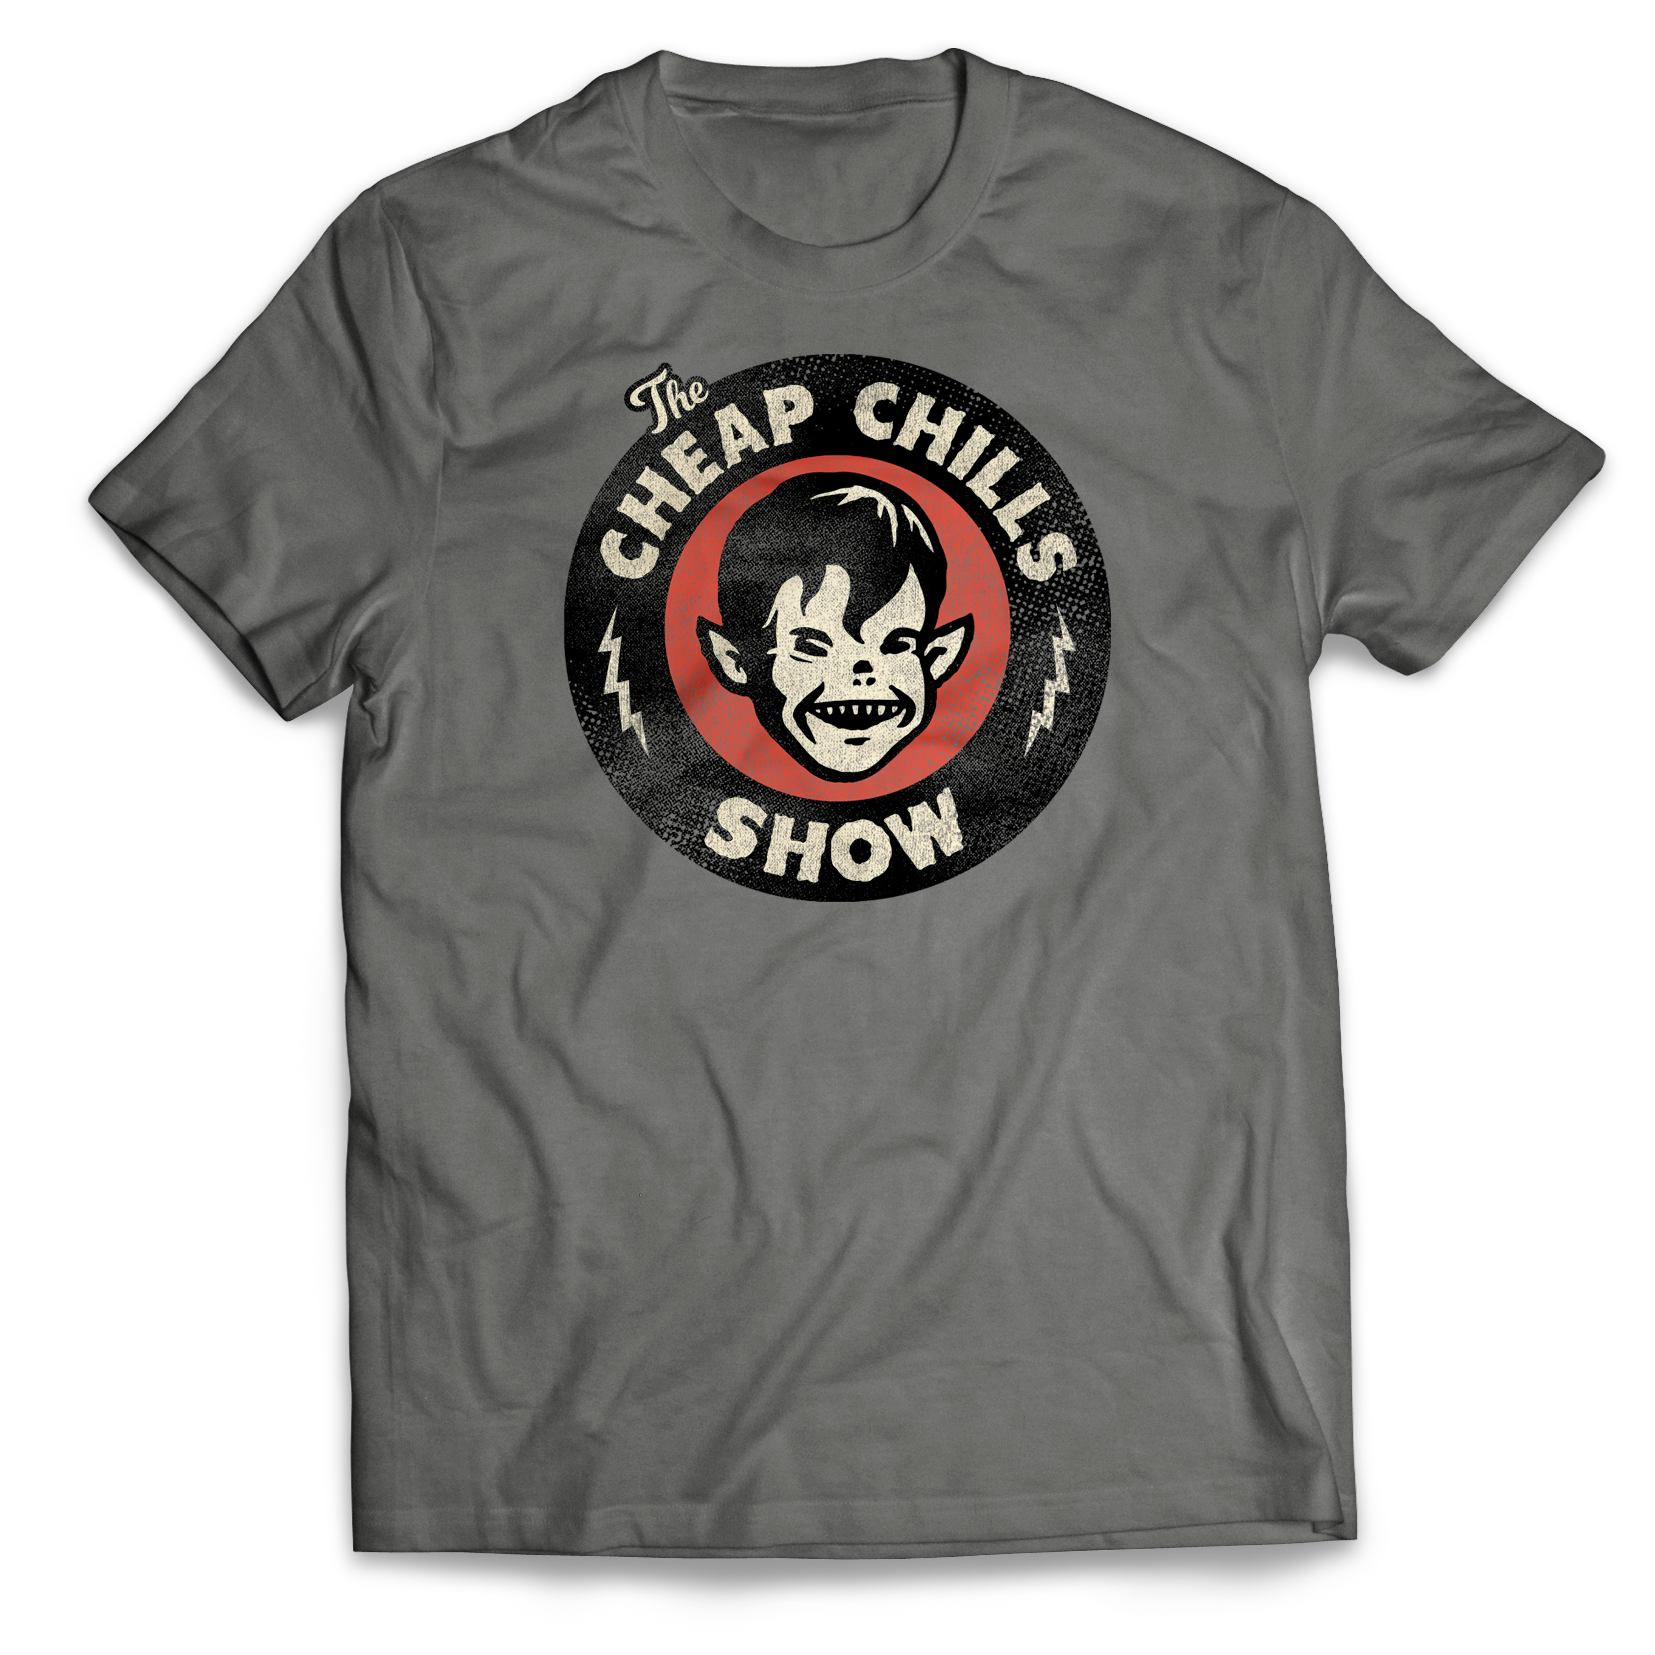 Cheap Chills Show Official Logo T-shirtWeathered print makes it look like you were totally a fan of the podcast before there was one. - Get it on Amazon.comGet the Premium (slim cut)